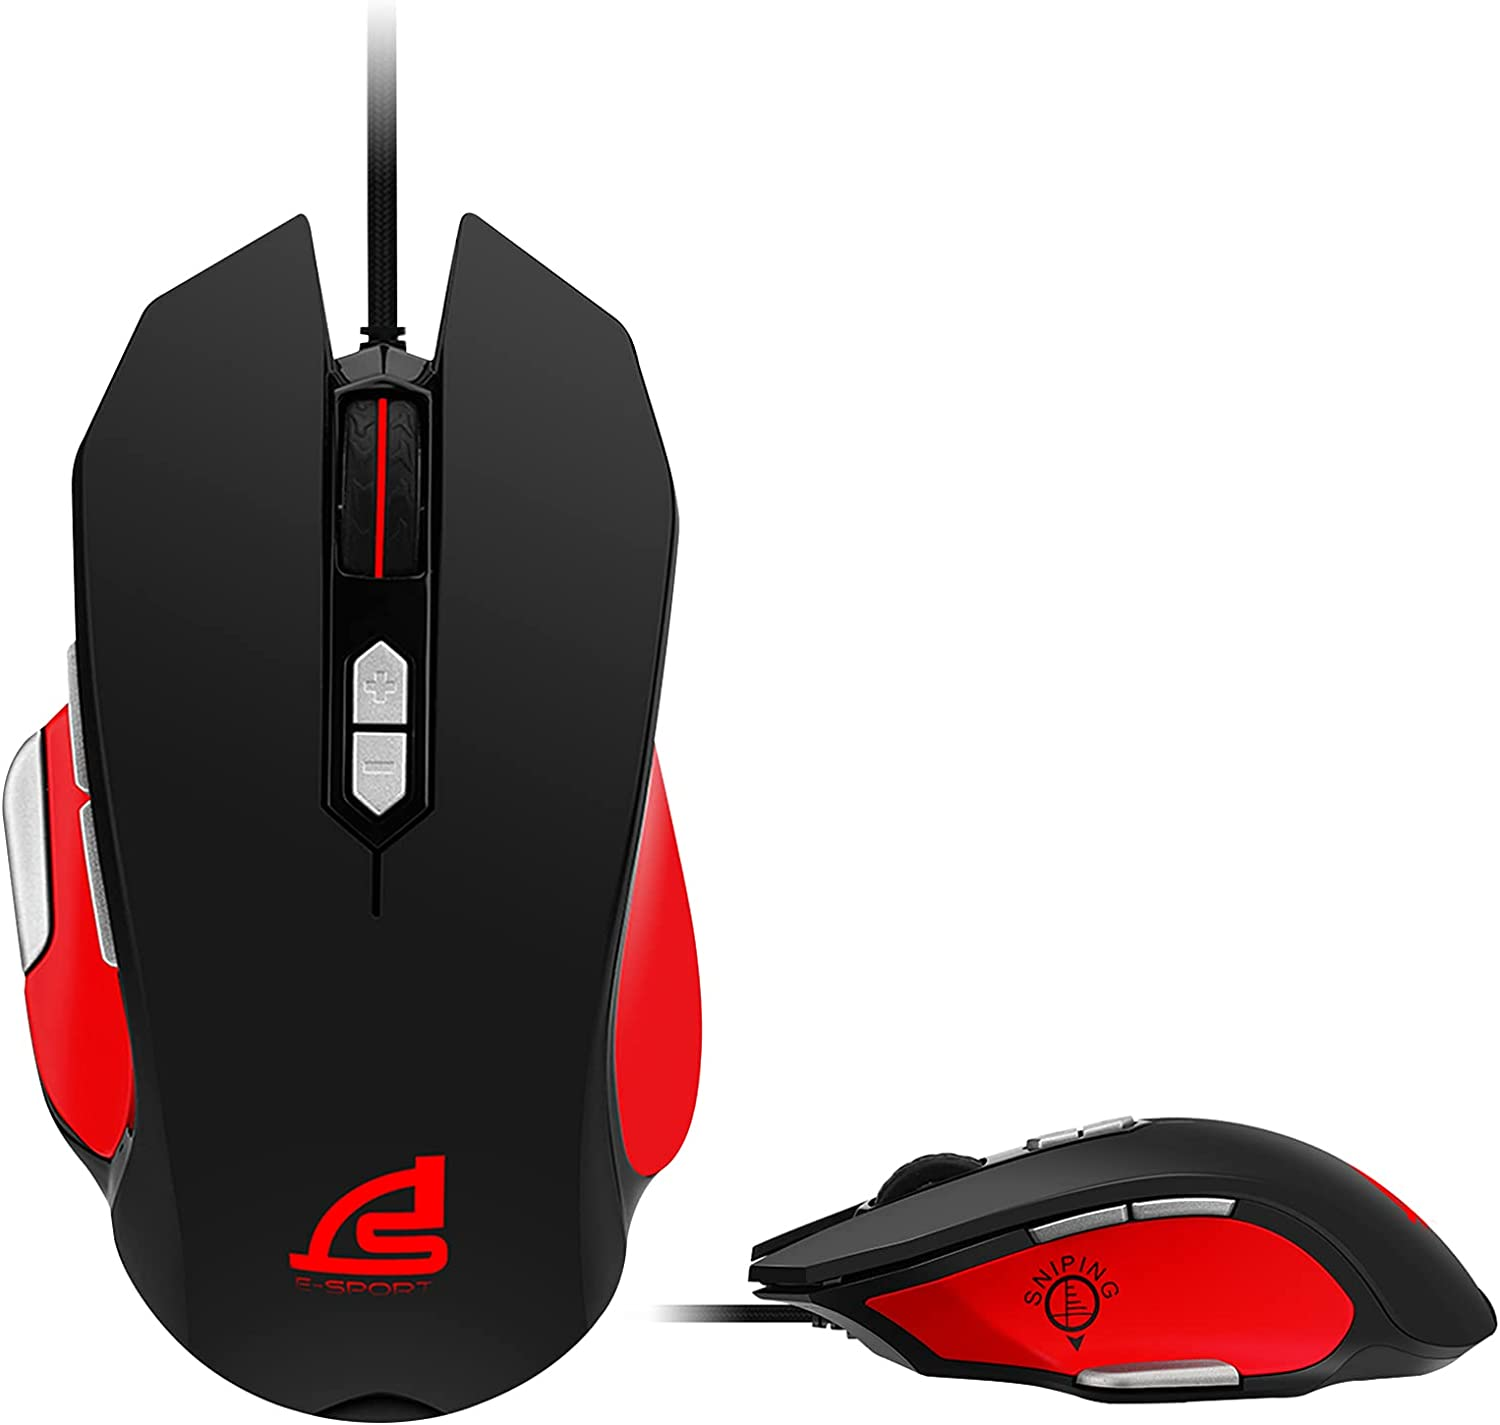 SIGNO Gaming Mouse Wired High Sensitivity Ergonomic Sweat-Resistant RGB Lighting Real 500-4000 DPI Adjustable 8 Programmable Buttons PC and MAC for Windows 7 8 10(GM-917)